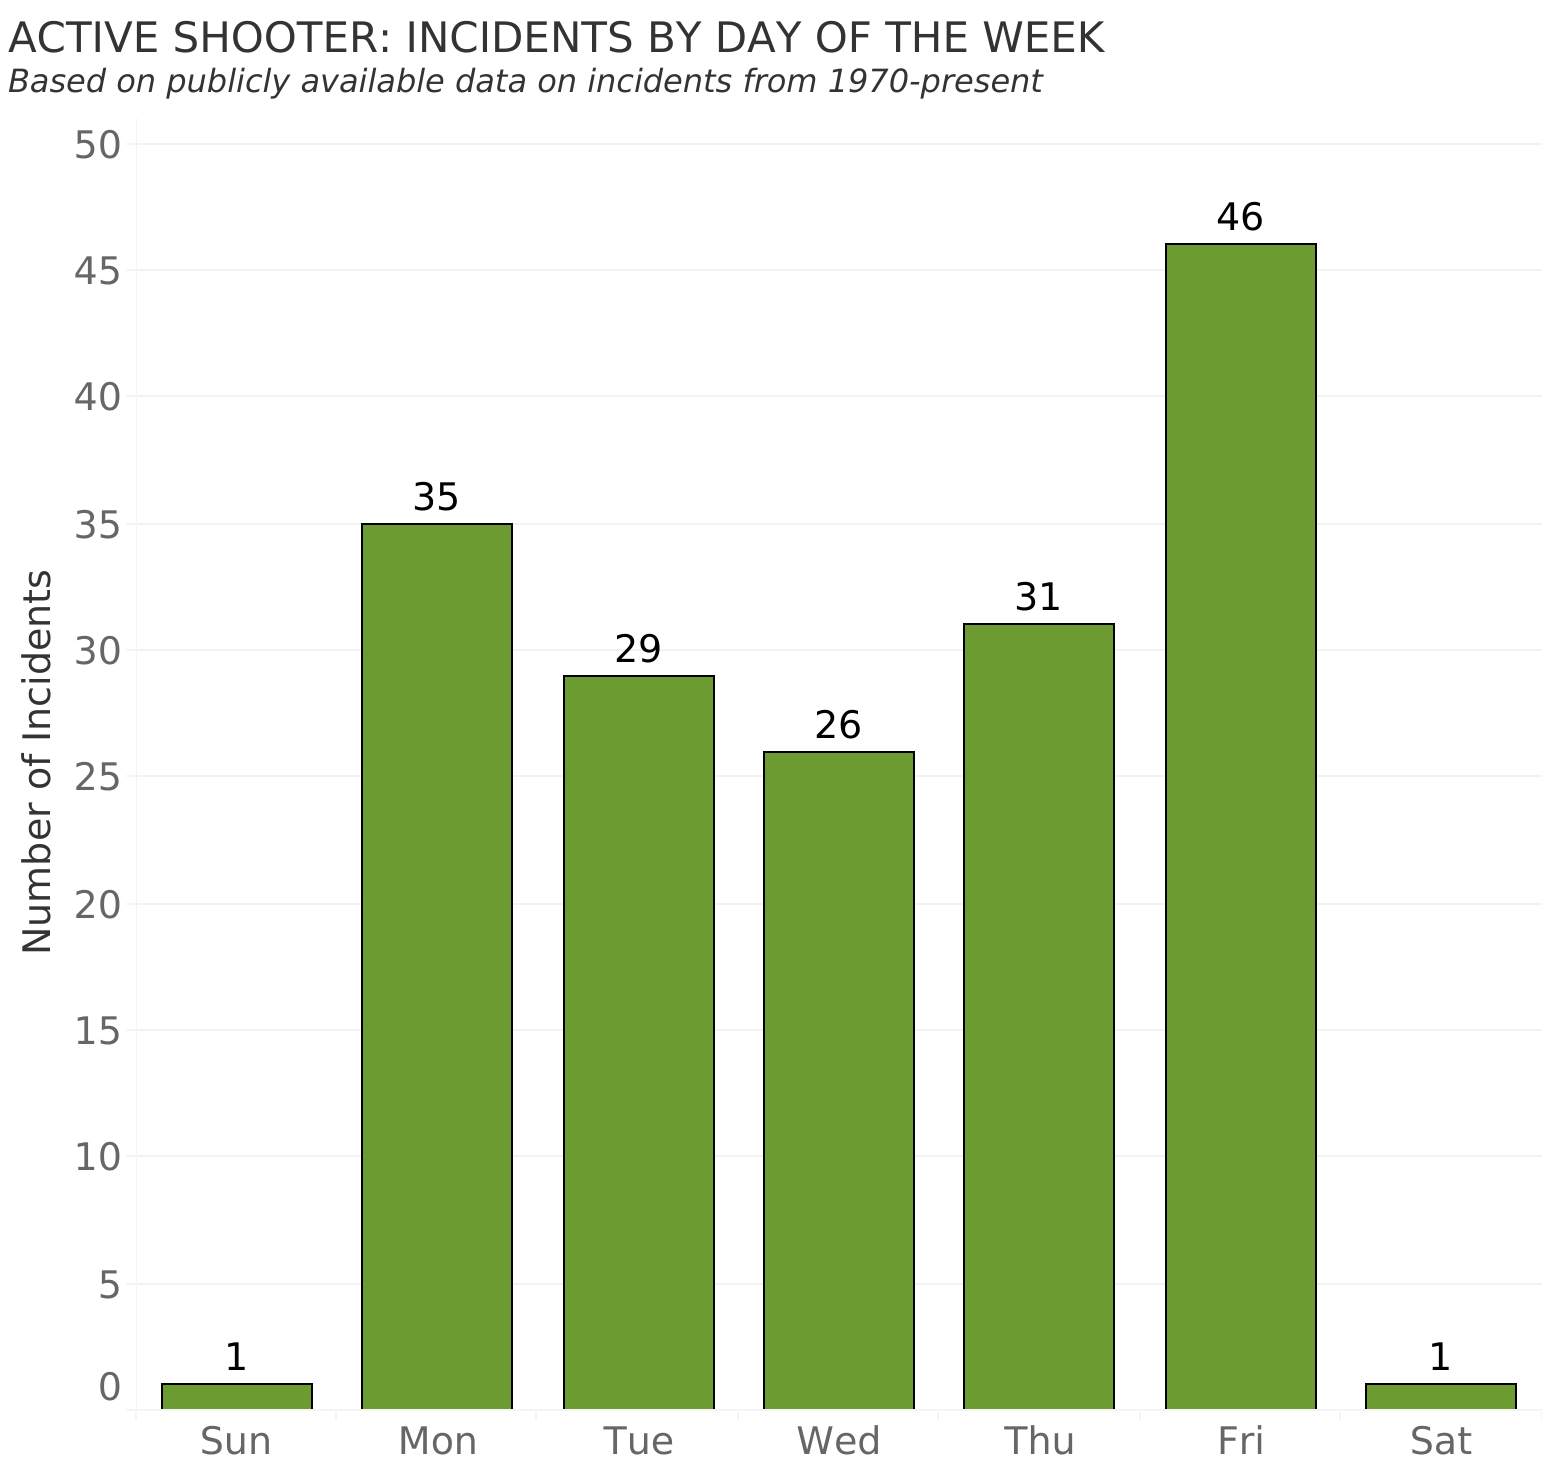 ACTIVE SHOOTER: INCIDENTS BY DAY OF THE WEEK